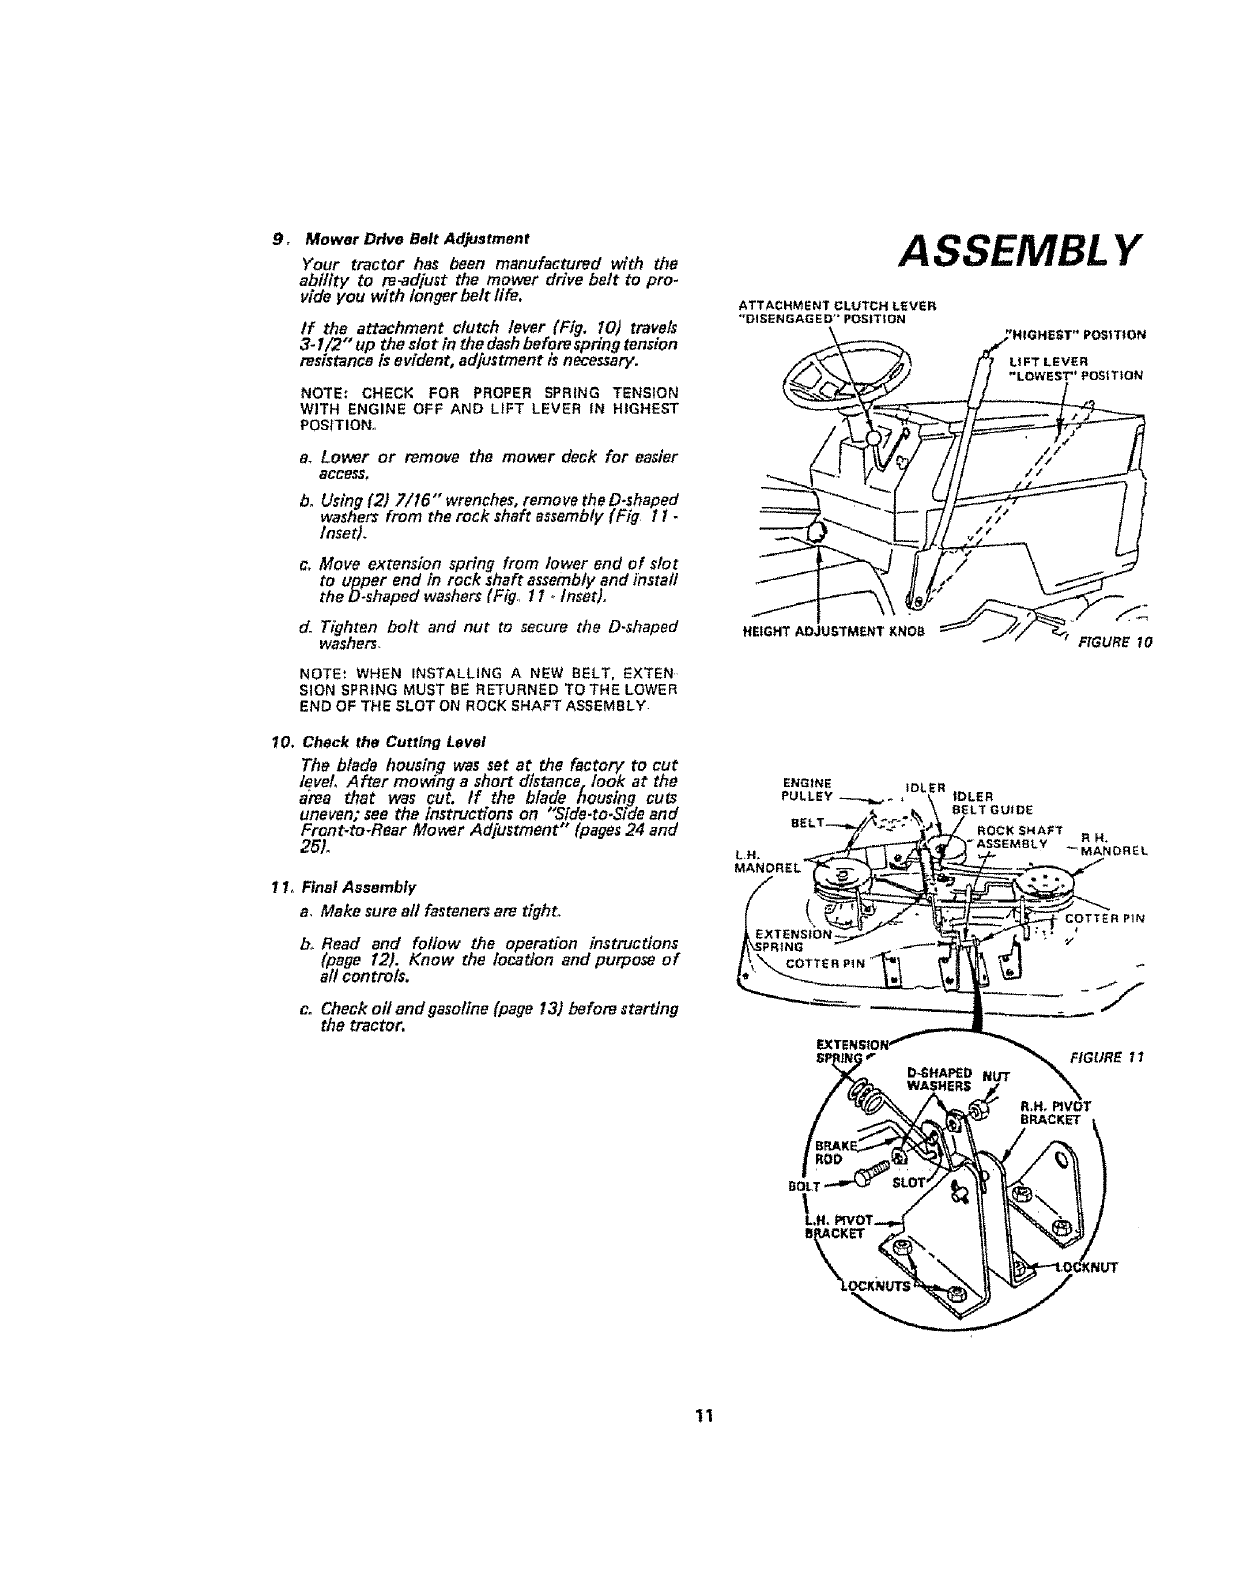 Sears 917 25471 Users Manual Governor Linkage Diagrams Besides Briggs Stratton Carburetor Diagram 9 Mower Ddve Belt Adjustment